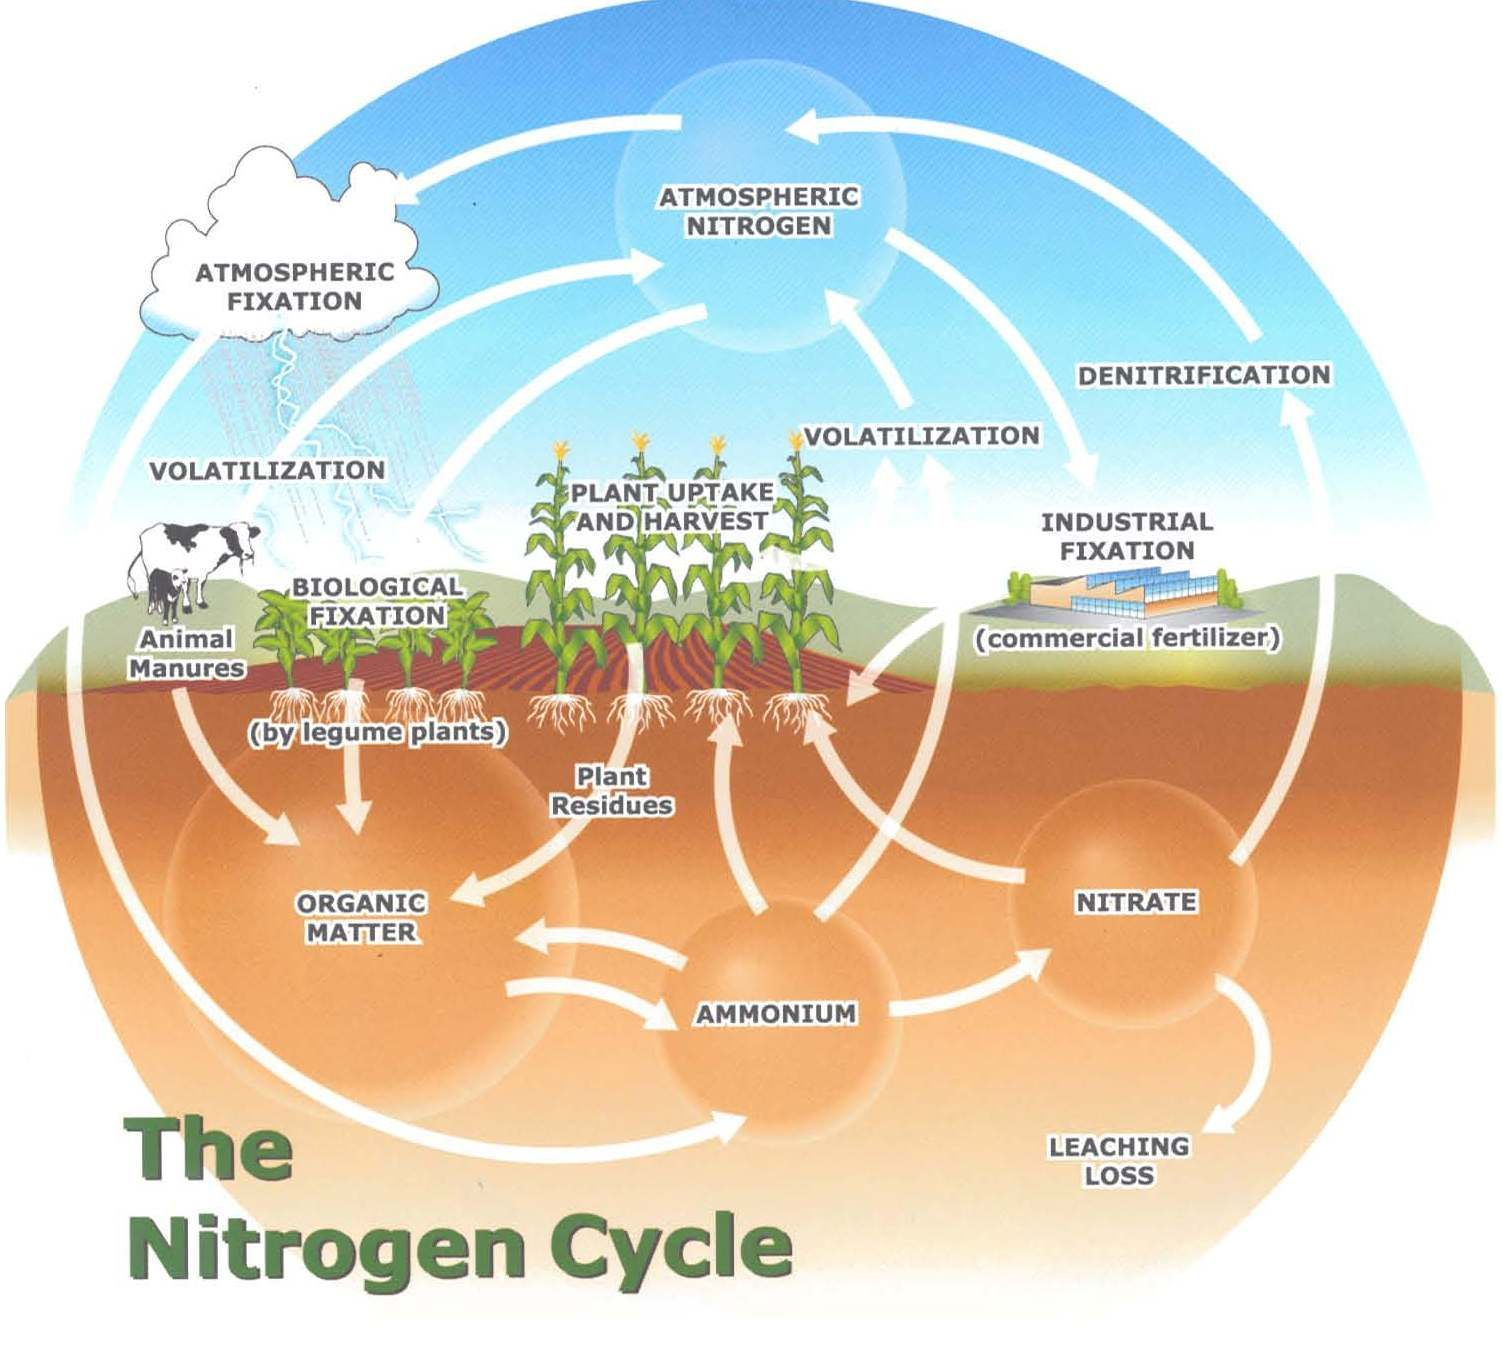 Nitrogen Cycle Sources Of Atmospheric Nitrogen Decay Of Animal Plant Matter Sinks For